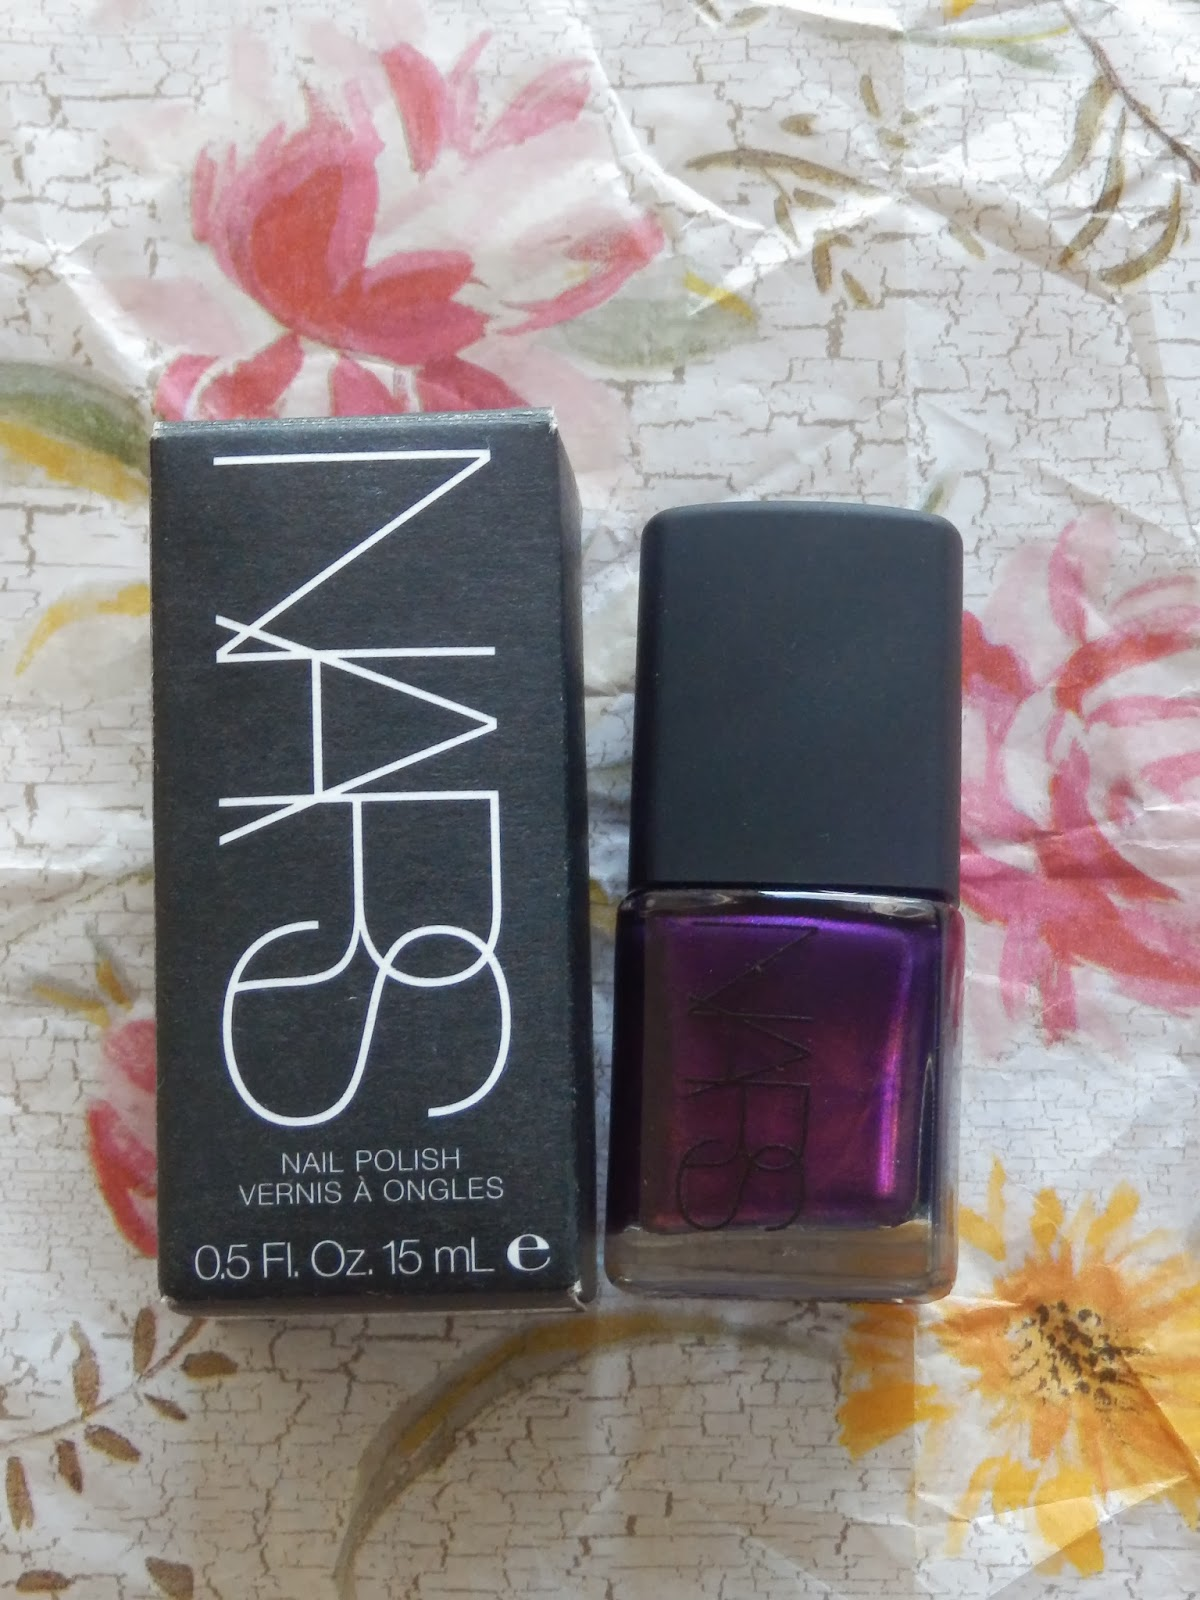 NARS nail polish called Purple Rain